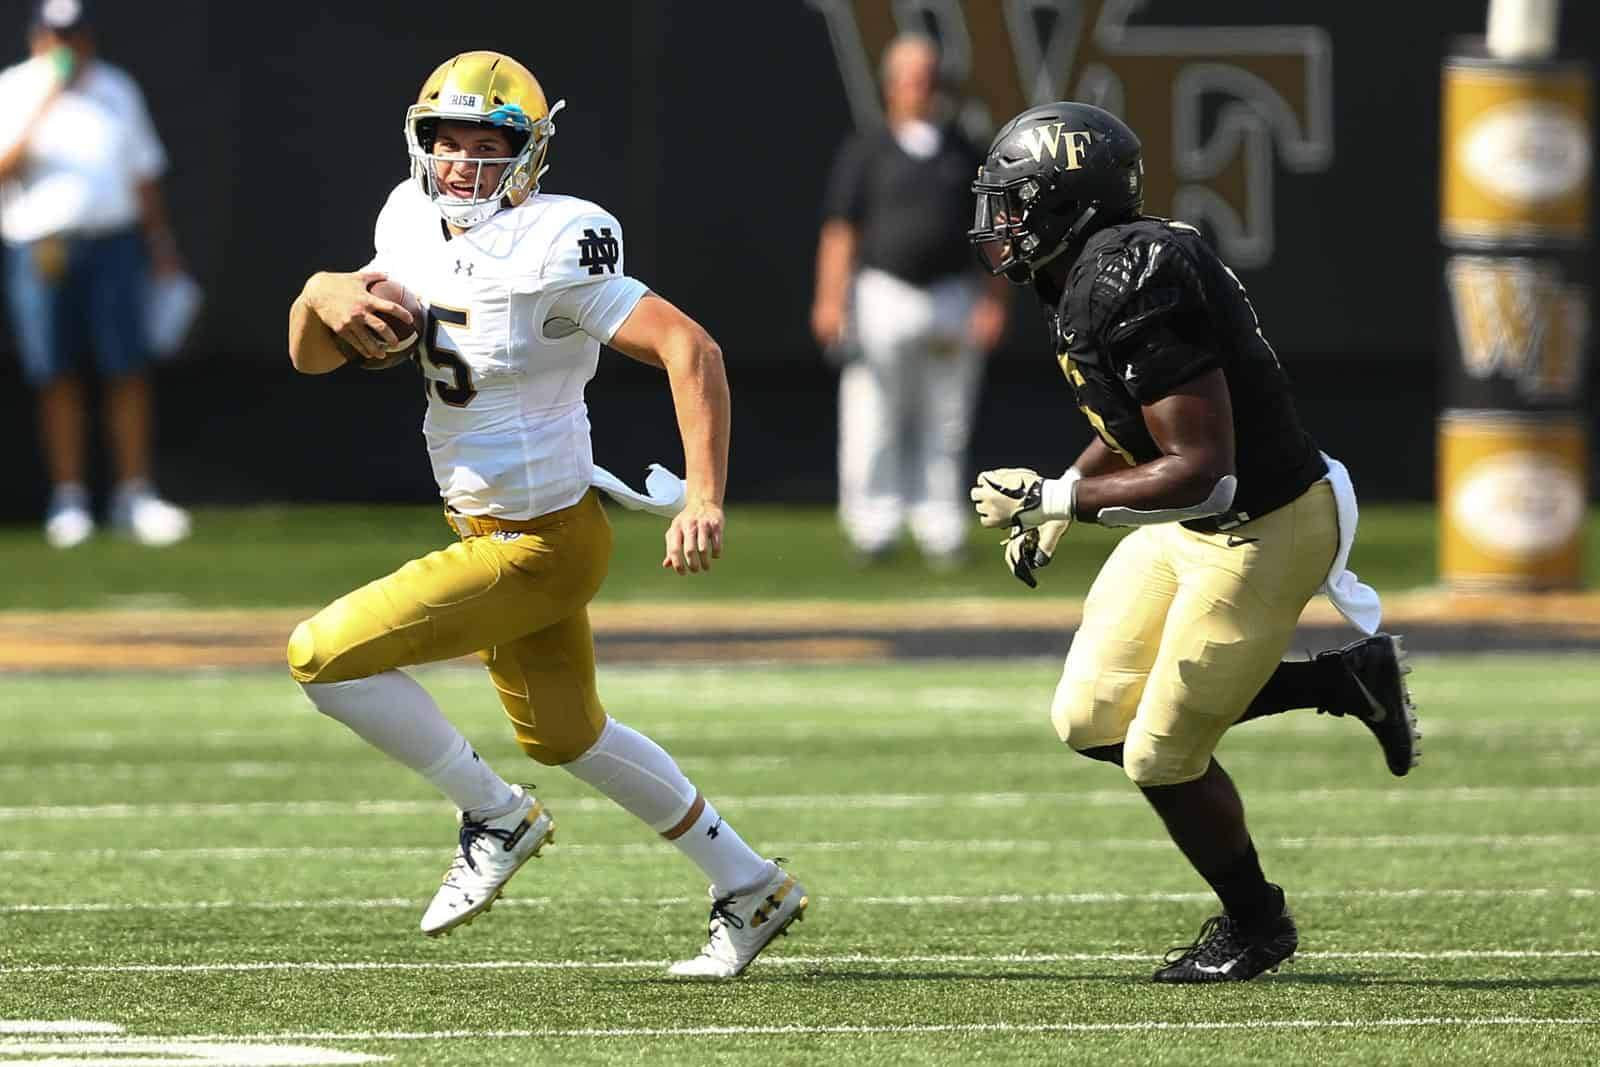 Notre Dame vs. Wake Forest postponed because of coronavirus